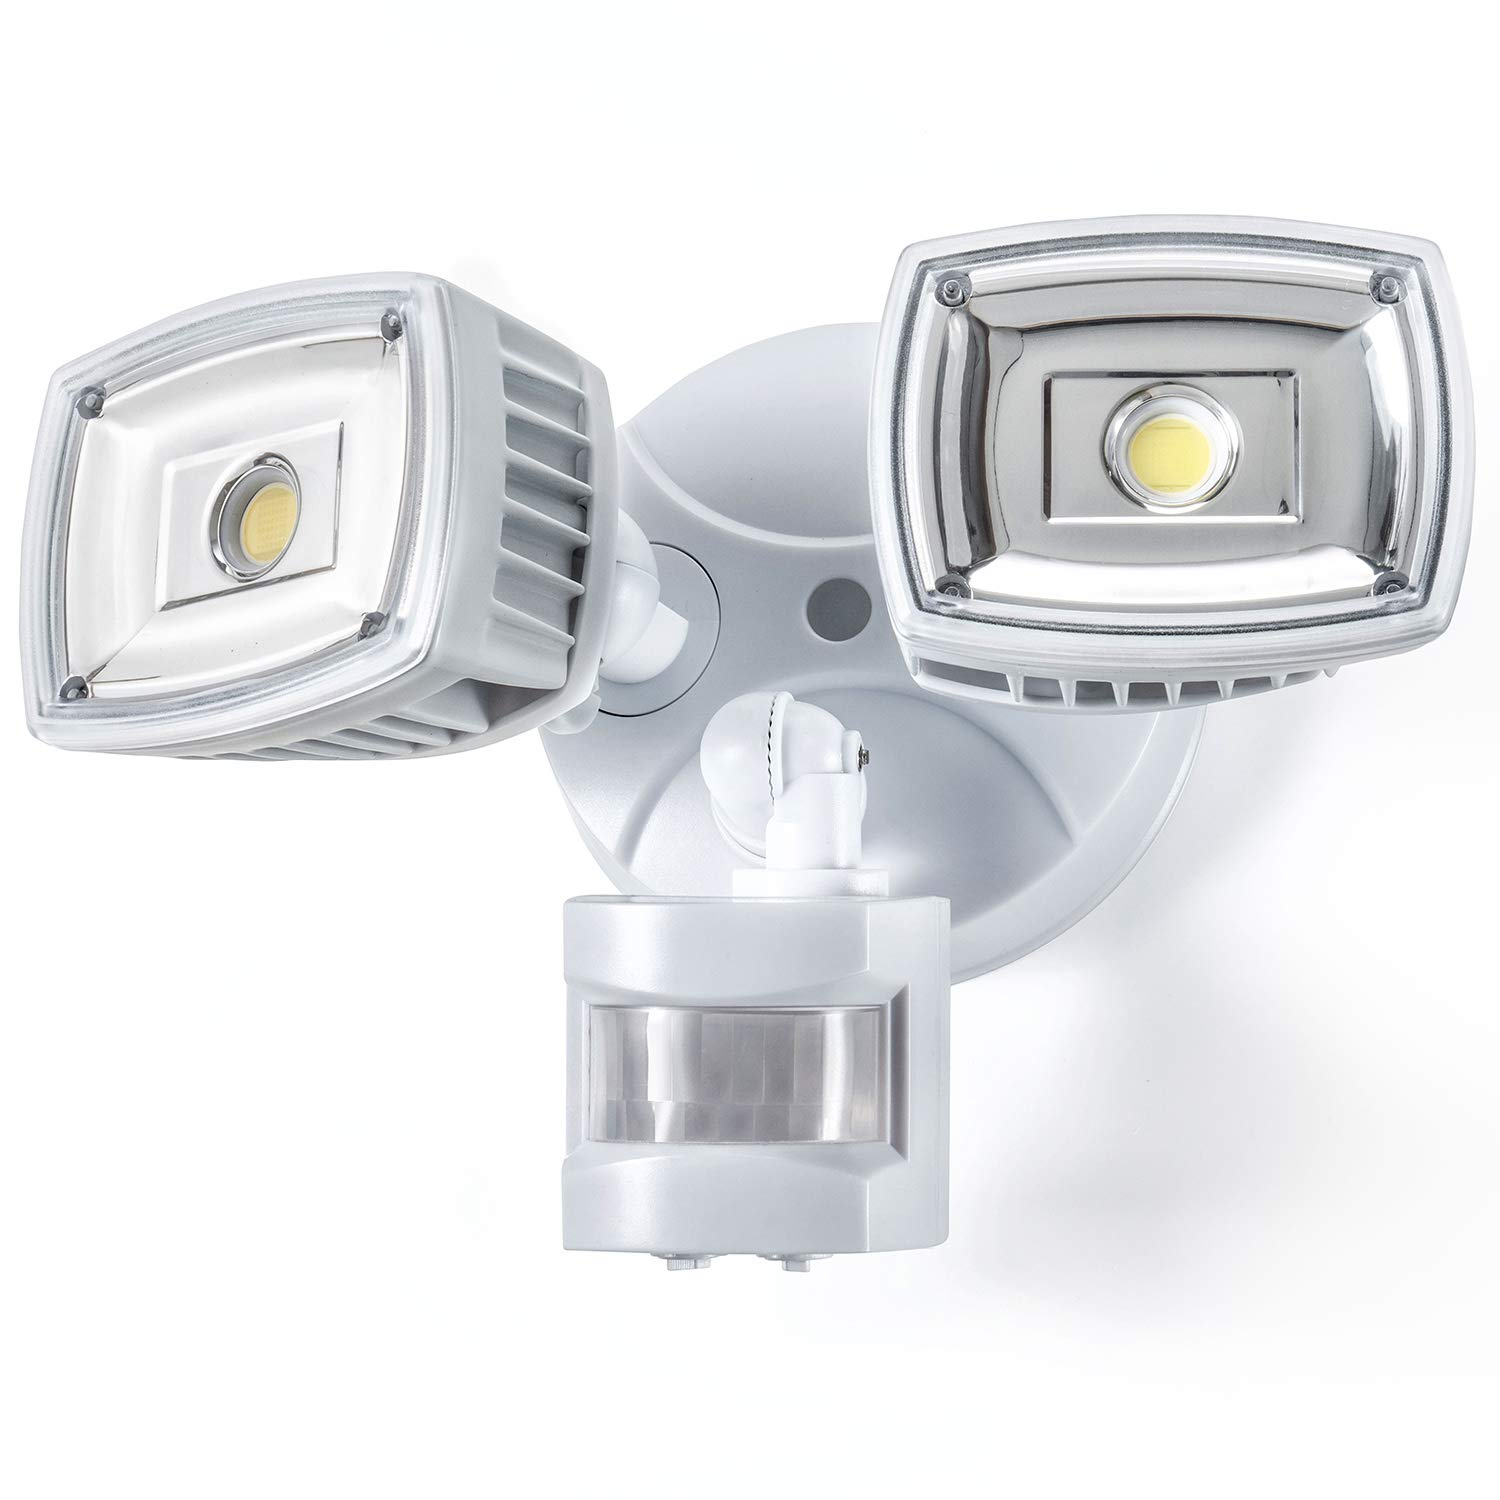 Home Zone ES00730V Security LED Motion Sensor Flood Lights, Outdoor Weatherproof Ultra Bright 5000K, White